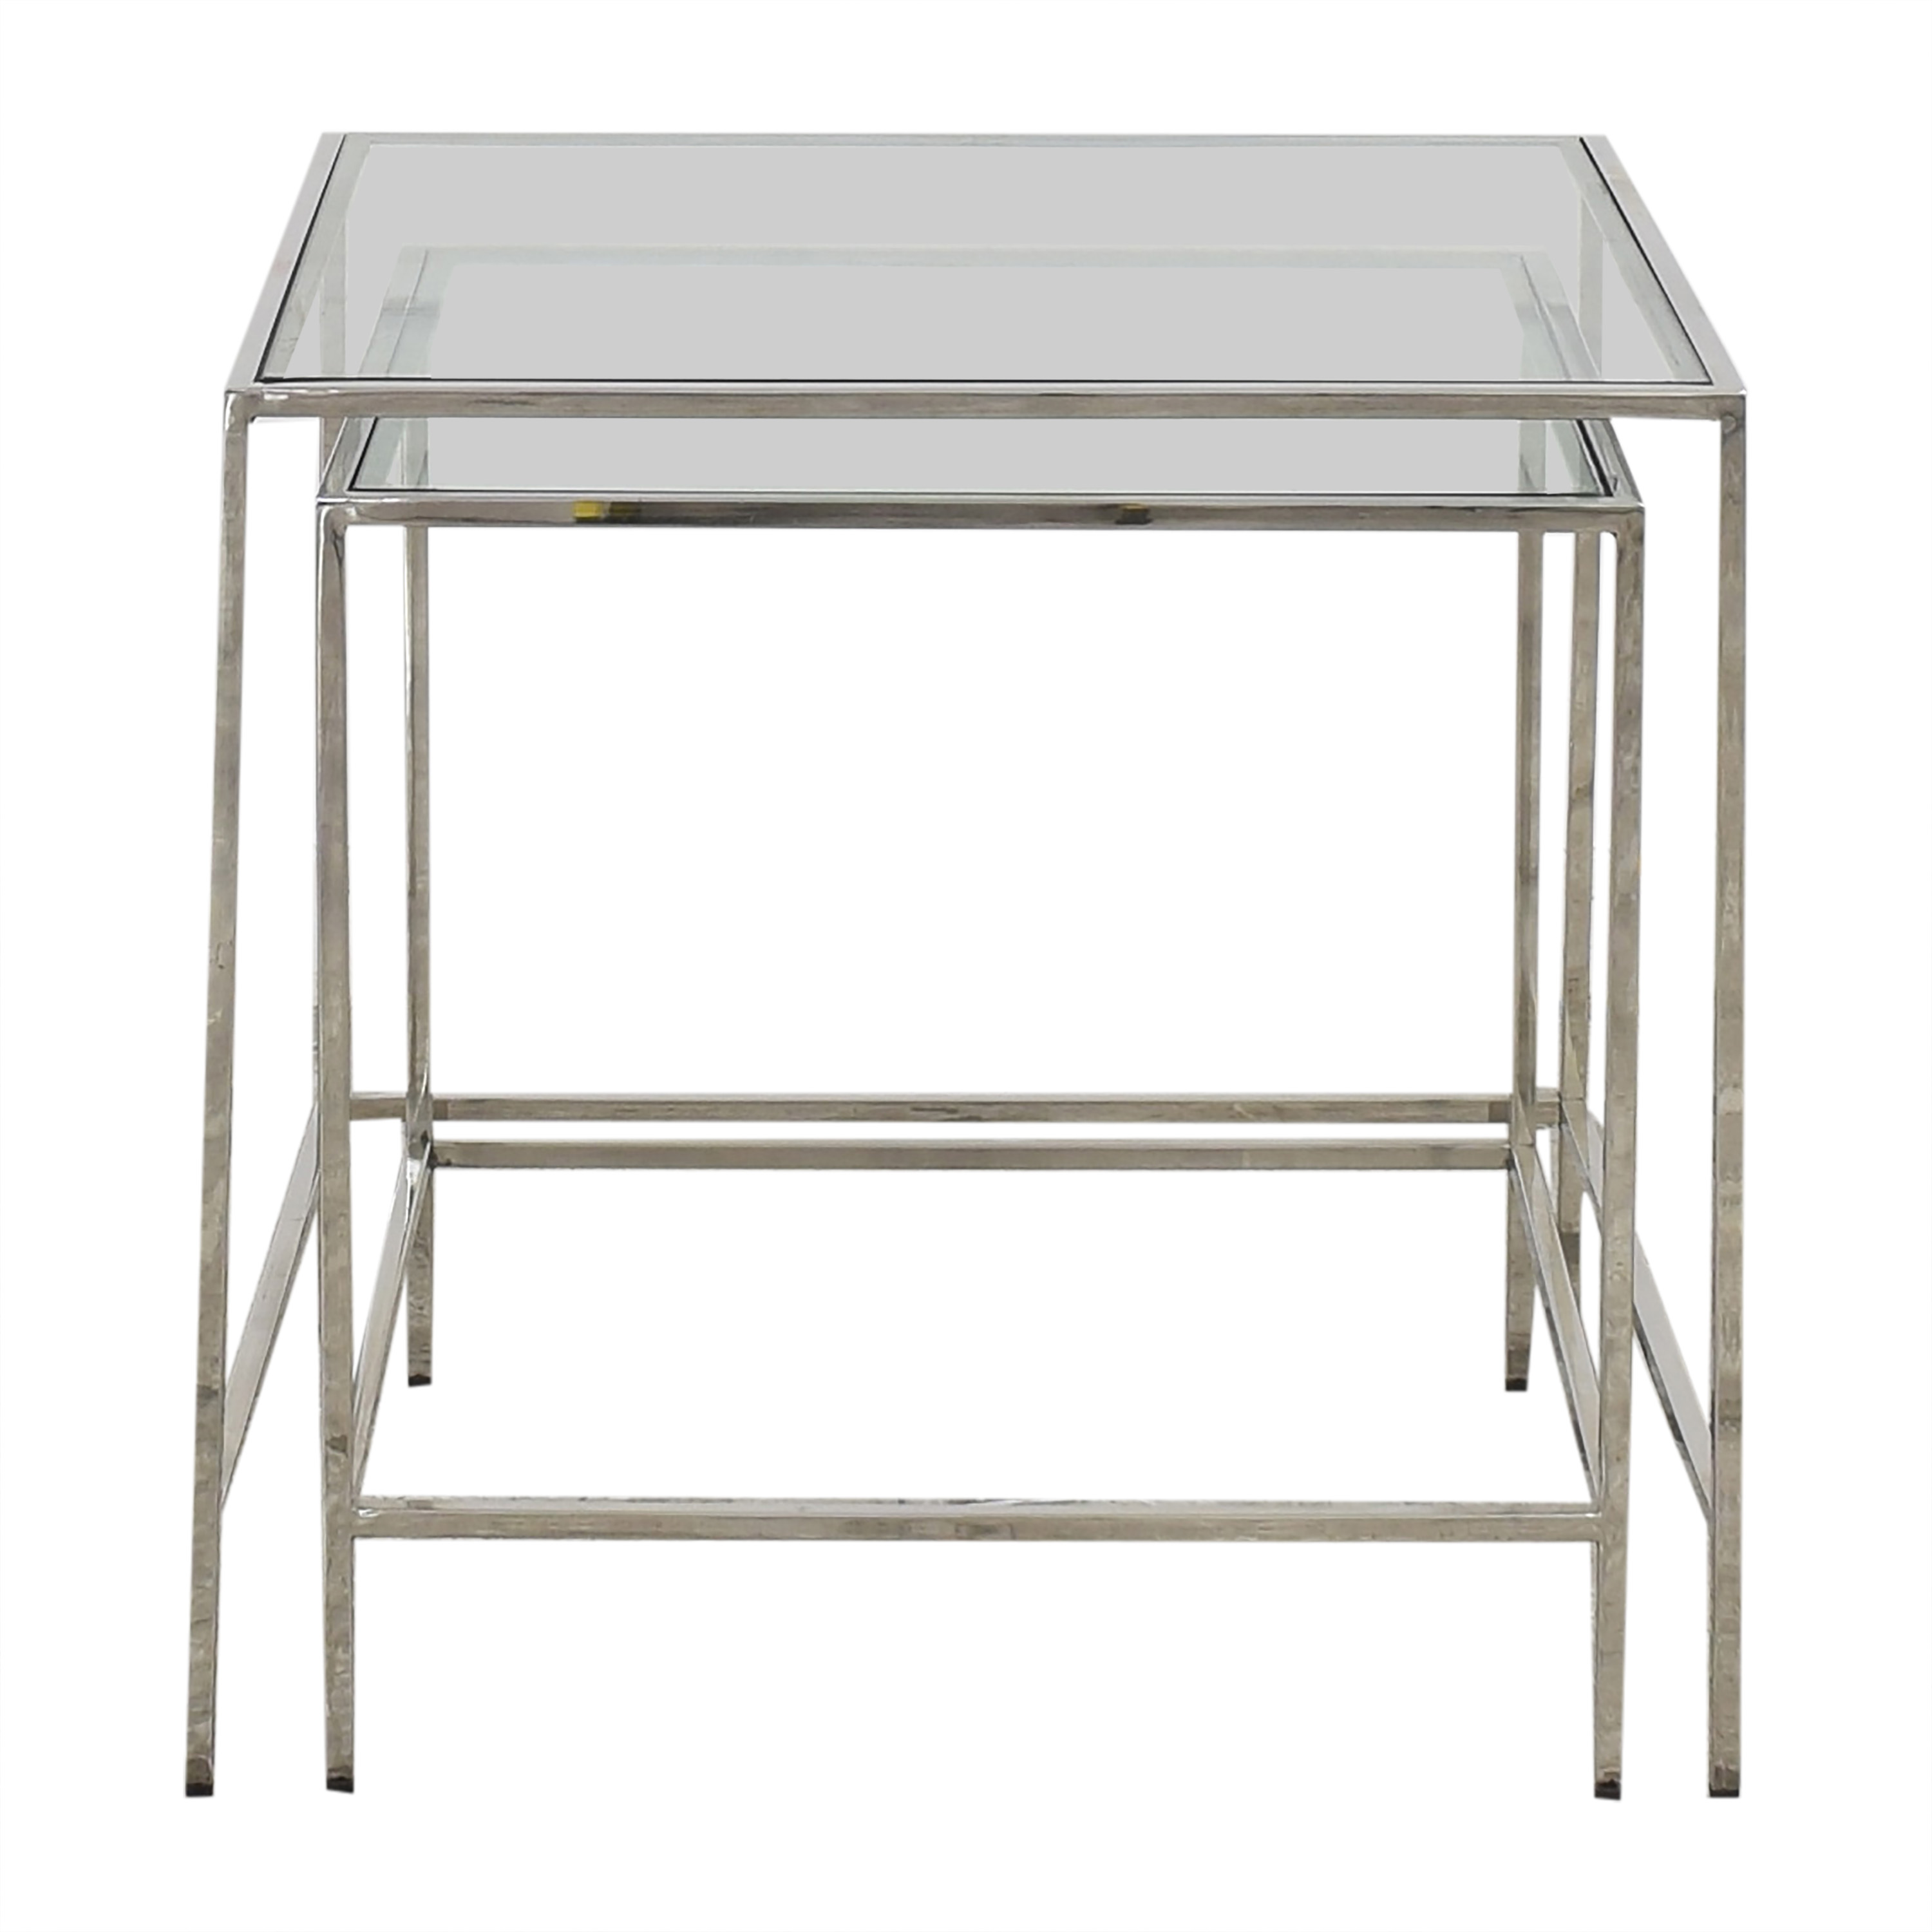 shop Mitchell Gold + Bob Williams Nesting Side Tables Mitchell Gold + Bob Williams Accent Tables